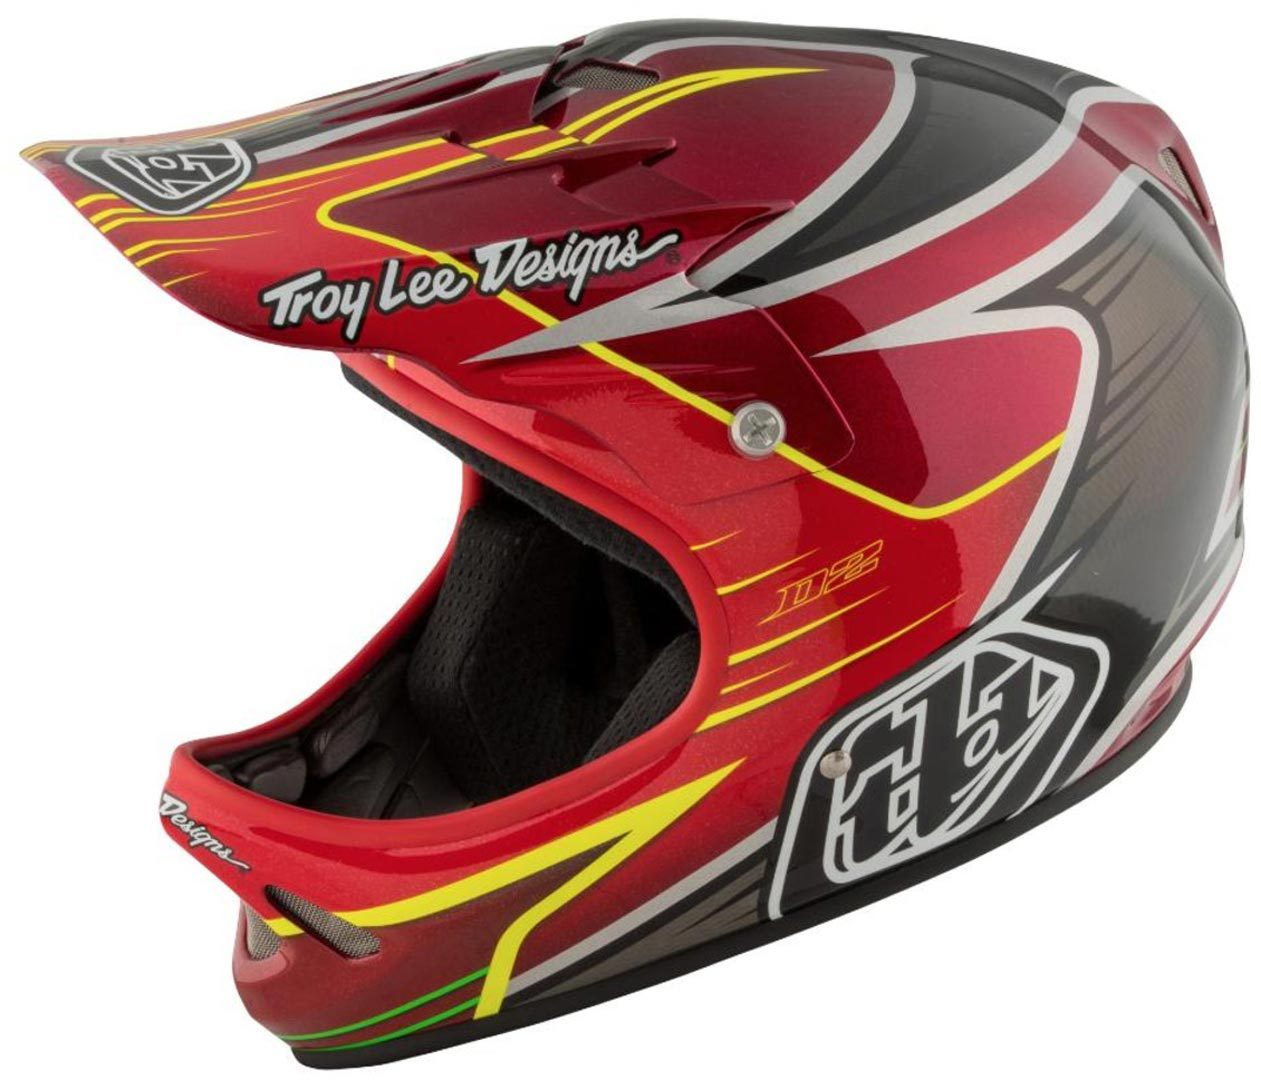 Troy Lee Designs D2 Pulse Fahrradhelm 139189401